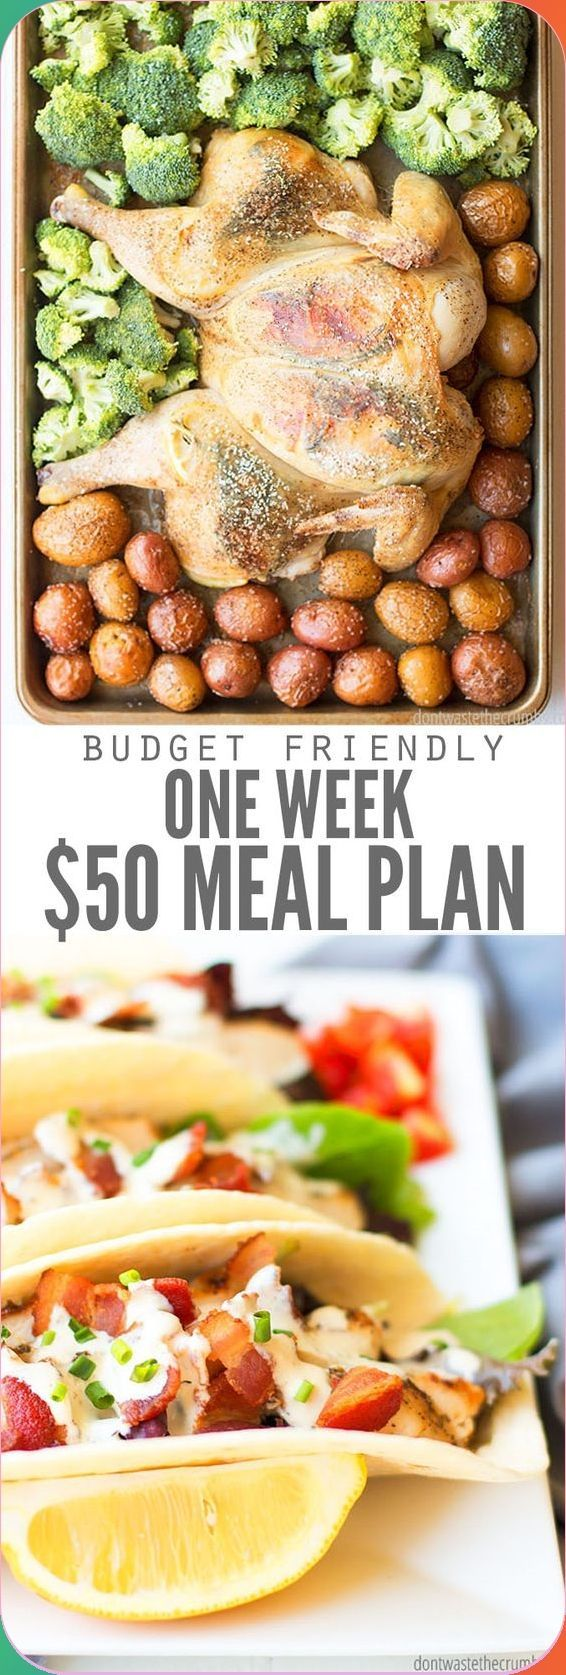 MAYBE YOU NEEDED MEAL PLAN FOR 50 DOLLAR A WEEK MAYBE YOU NEEDED MEAL PLAN FOR 50 DOLLAR A WEEK